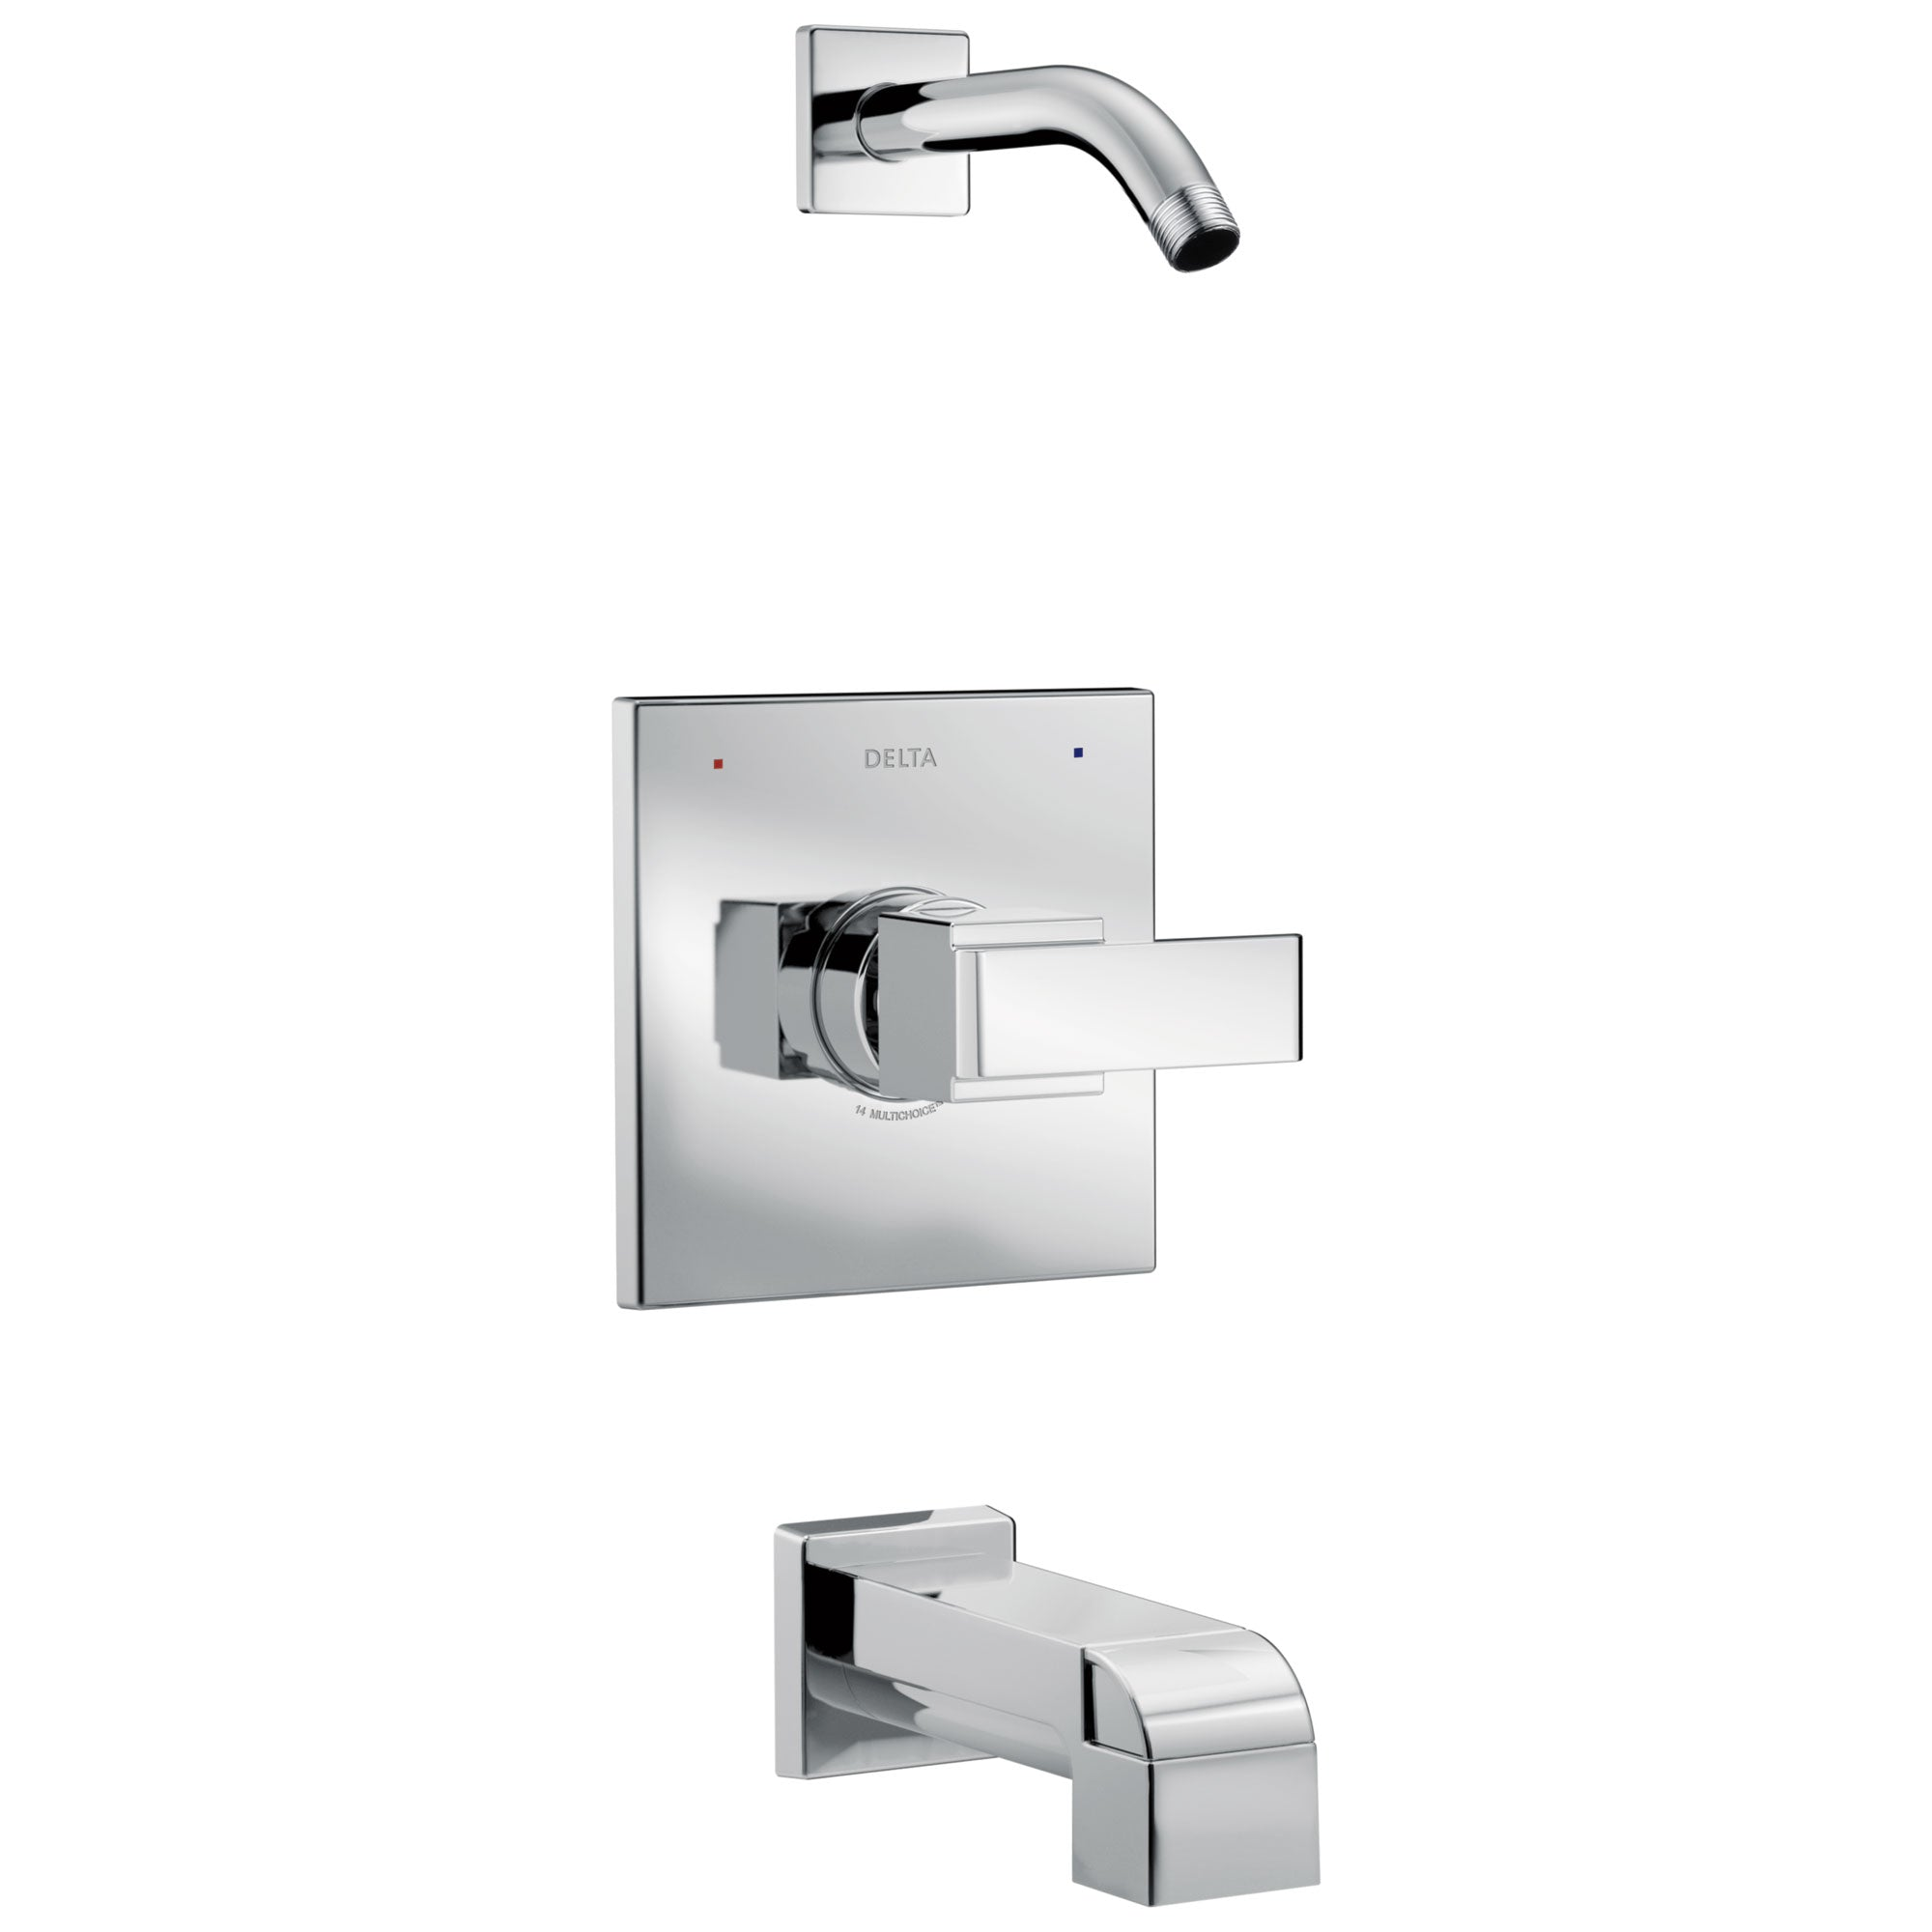 Delta Ara Collection Chrome Monitor 14 Series Modern Square Tub and Shower Combination Faucet Trim Kit - Less Showerhead (Requires Valve) DT14467LHD